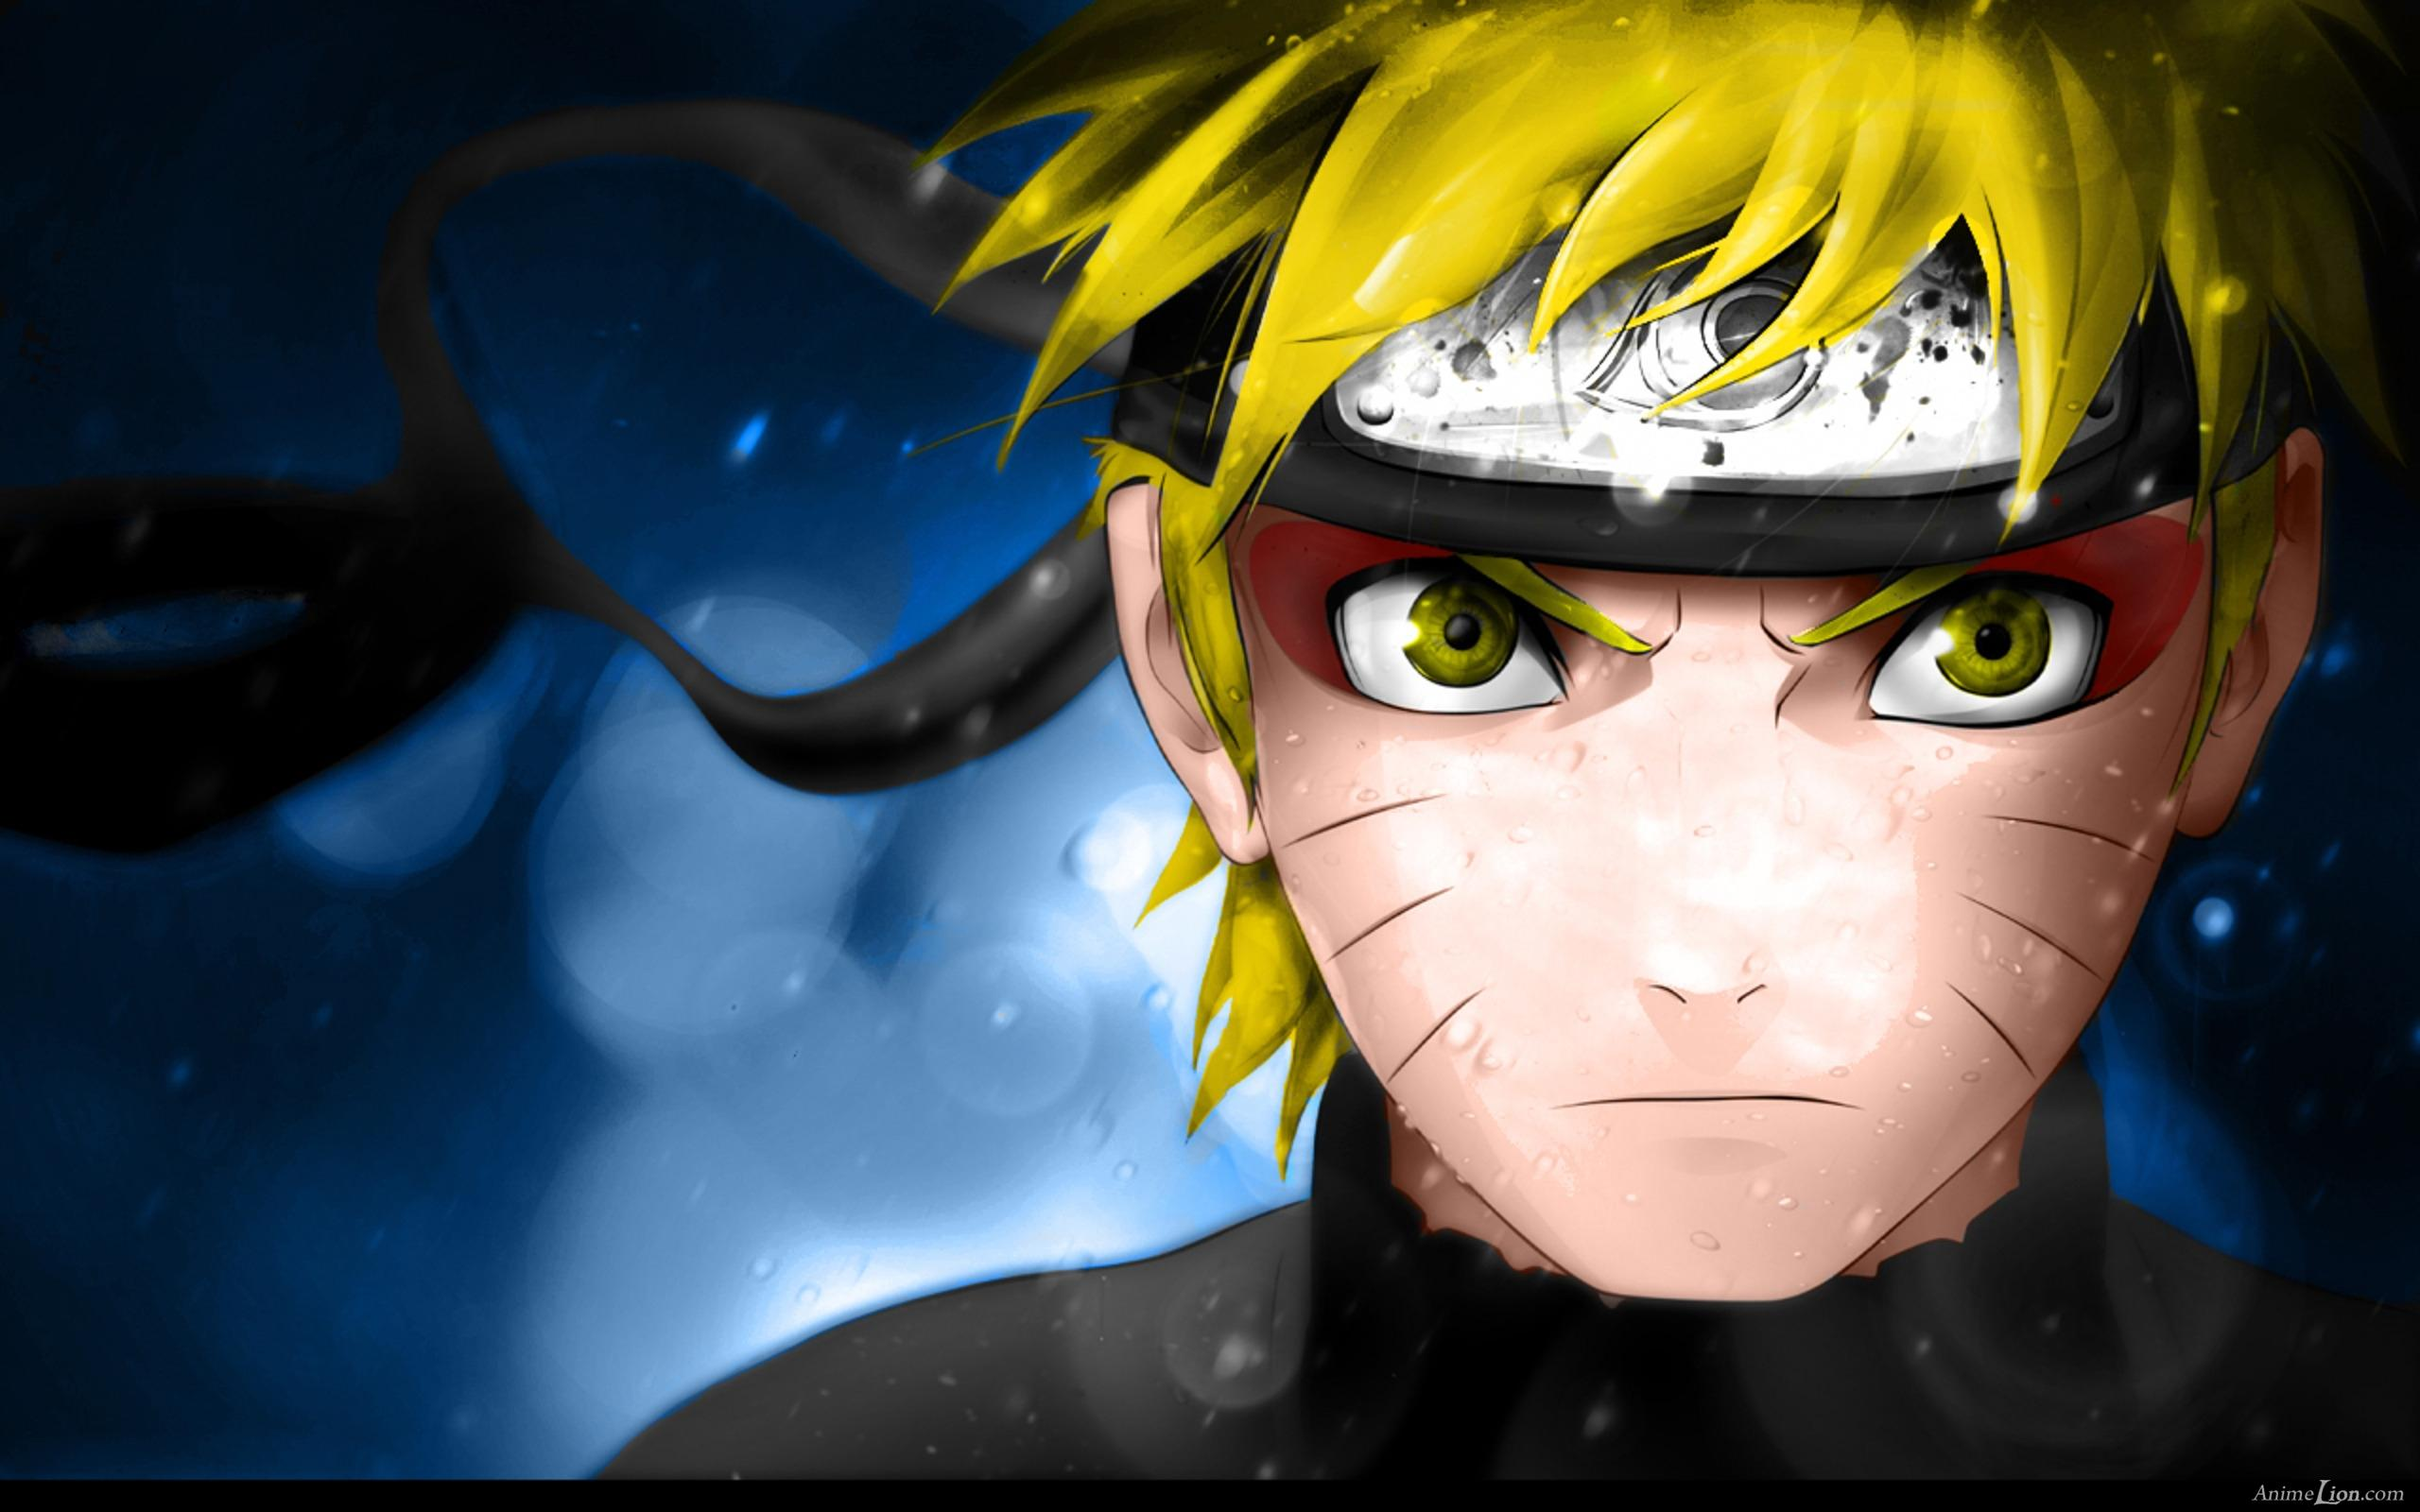 Personnages Naruto : niveau expert (1)